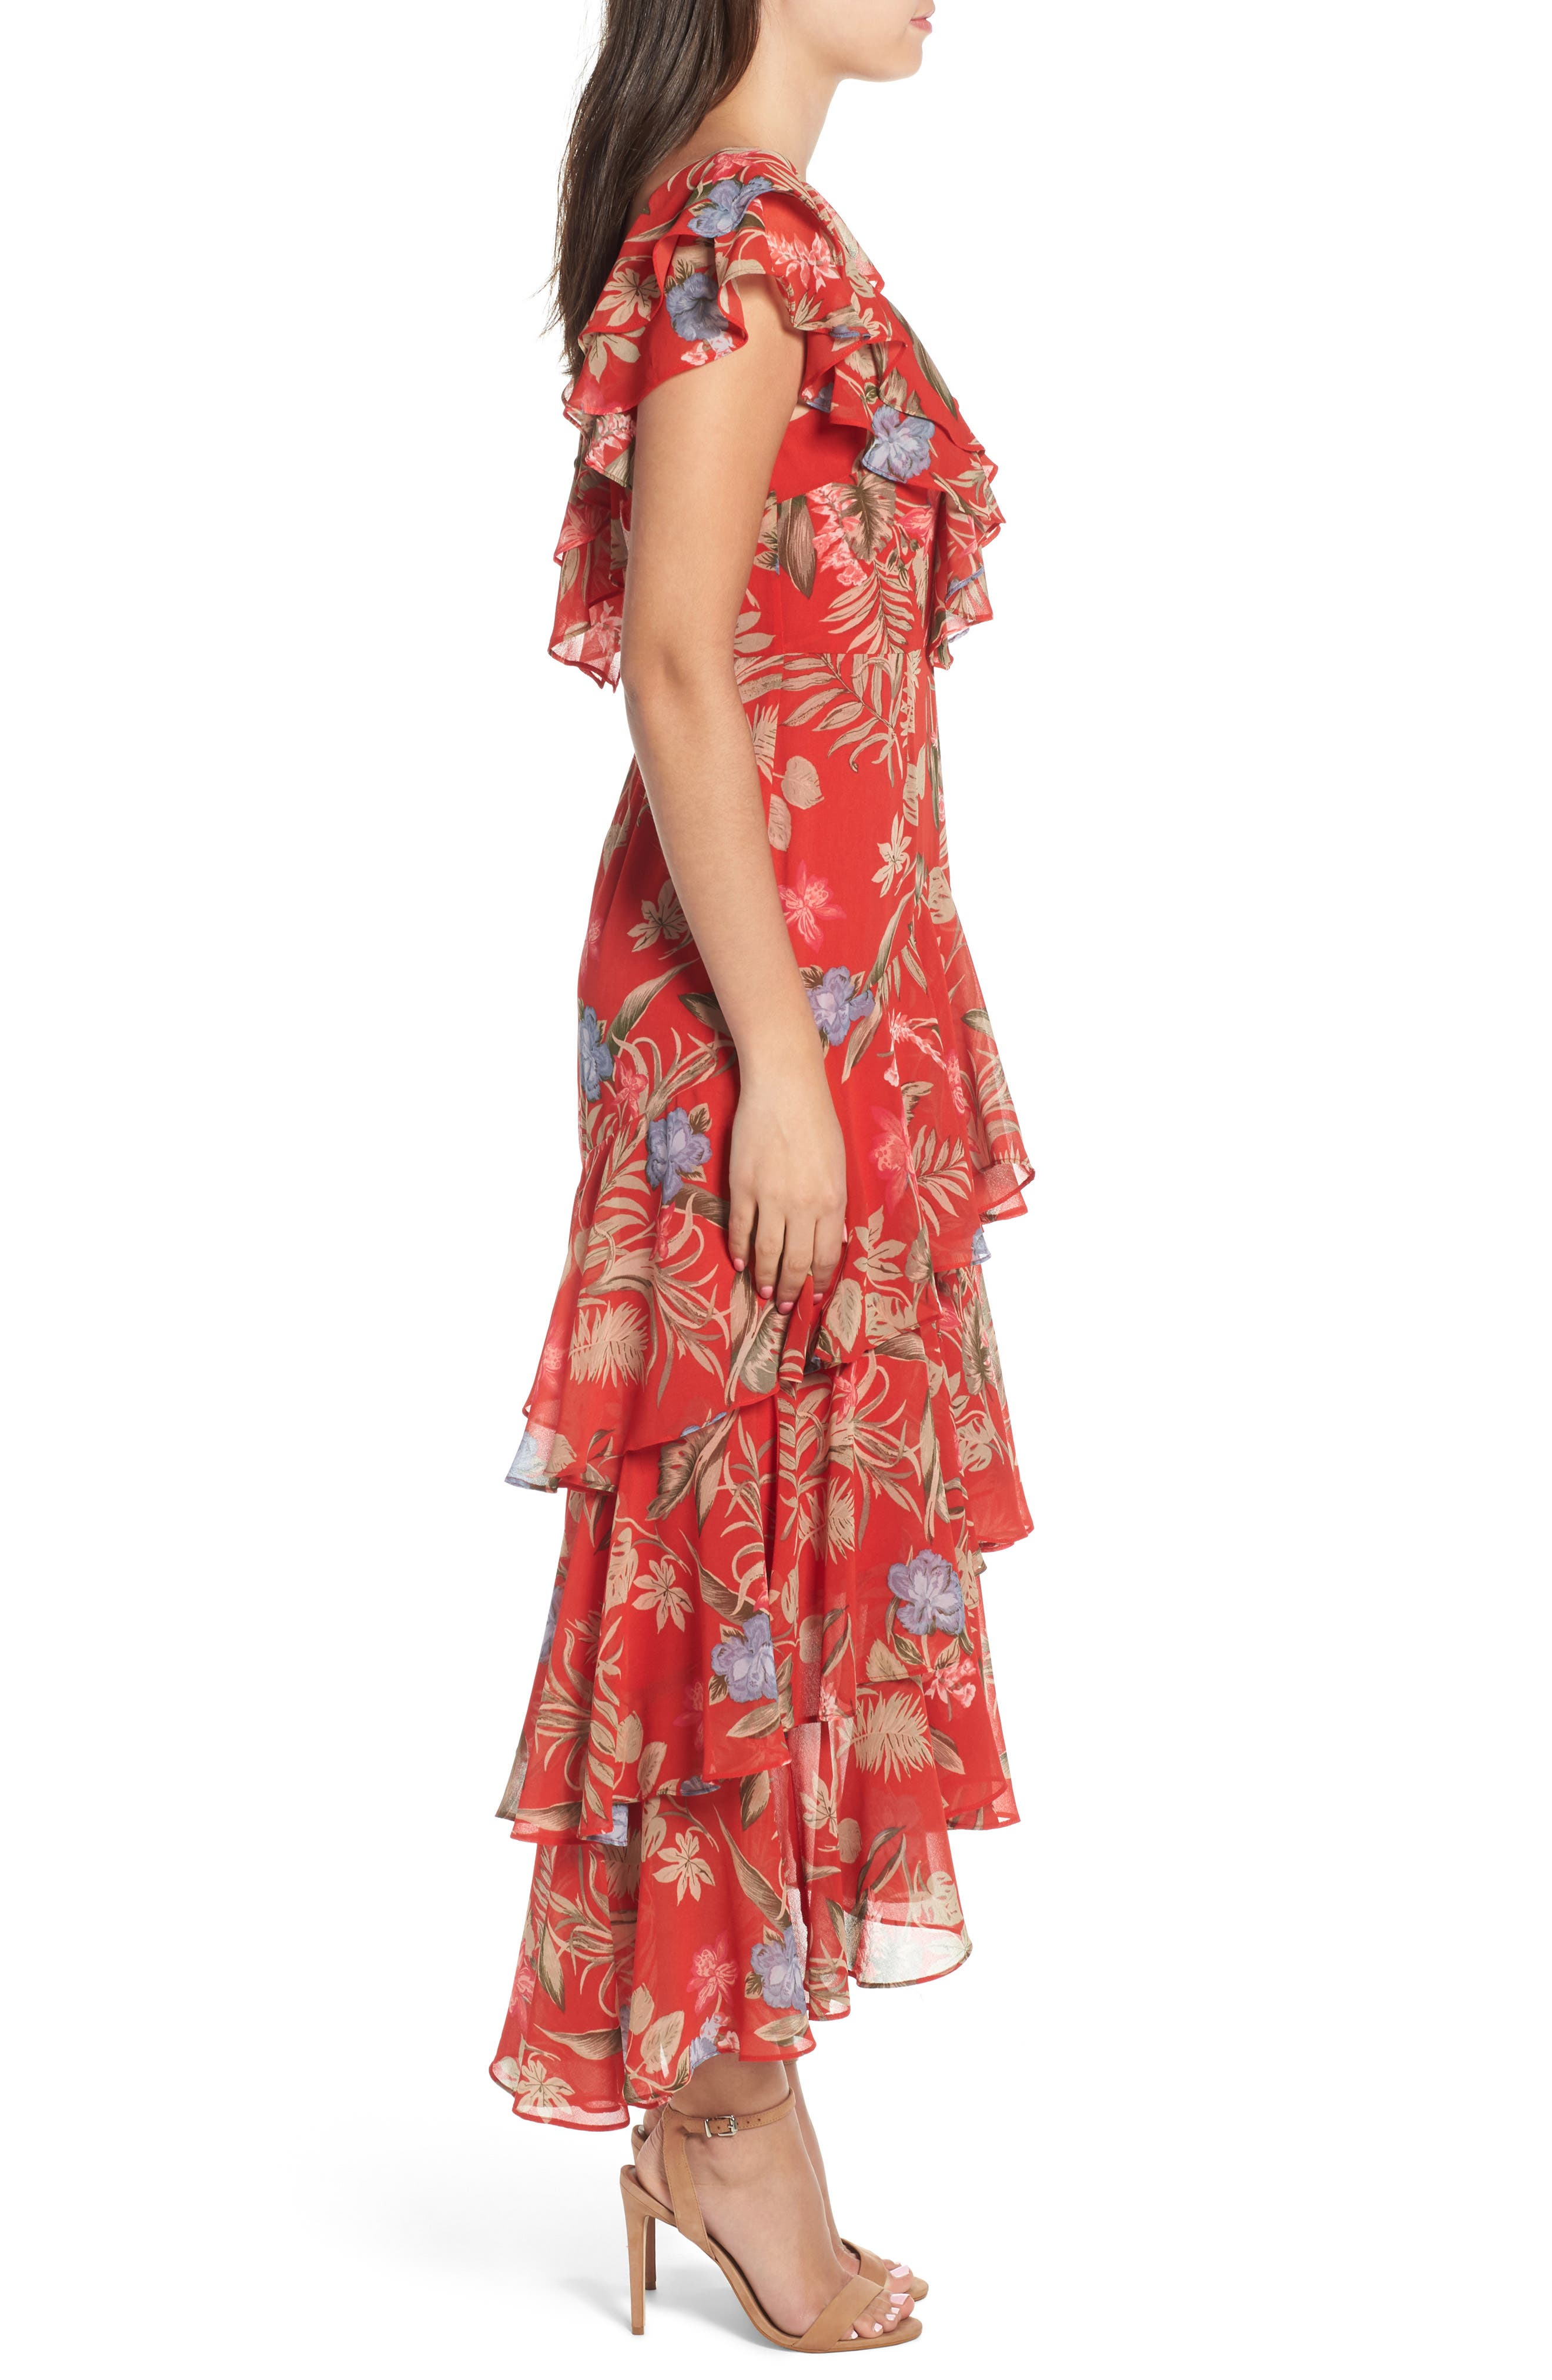 Chelsea Tiered Ruffle Maxi Dress,                             Alternate thumbnail 3, color,                             600